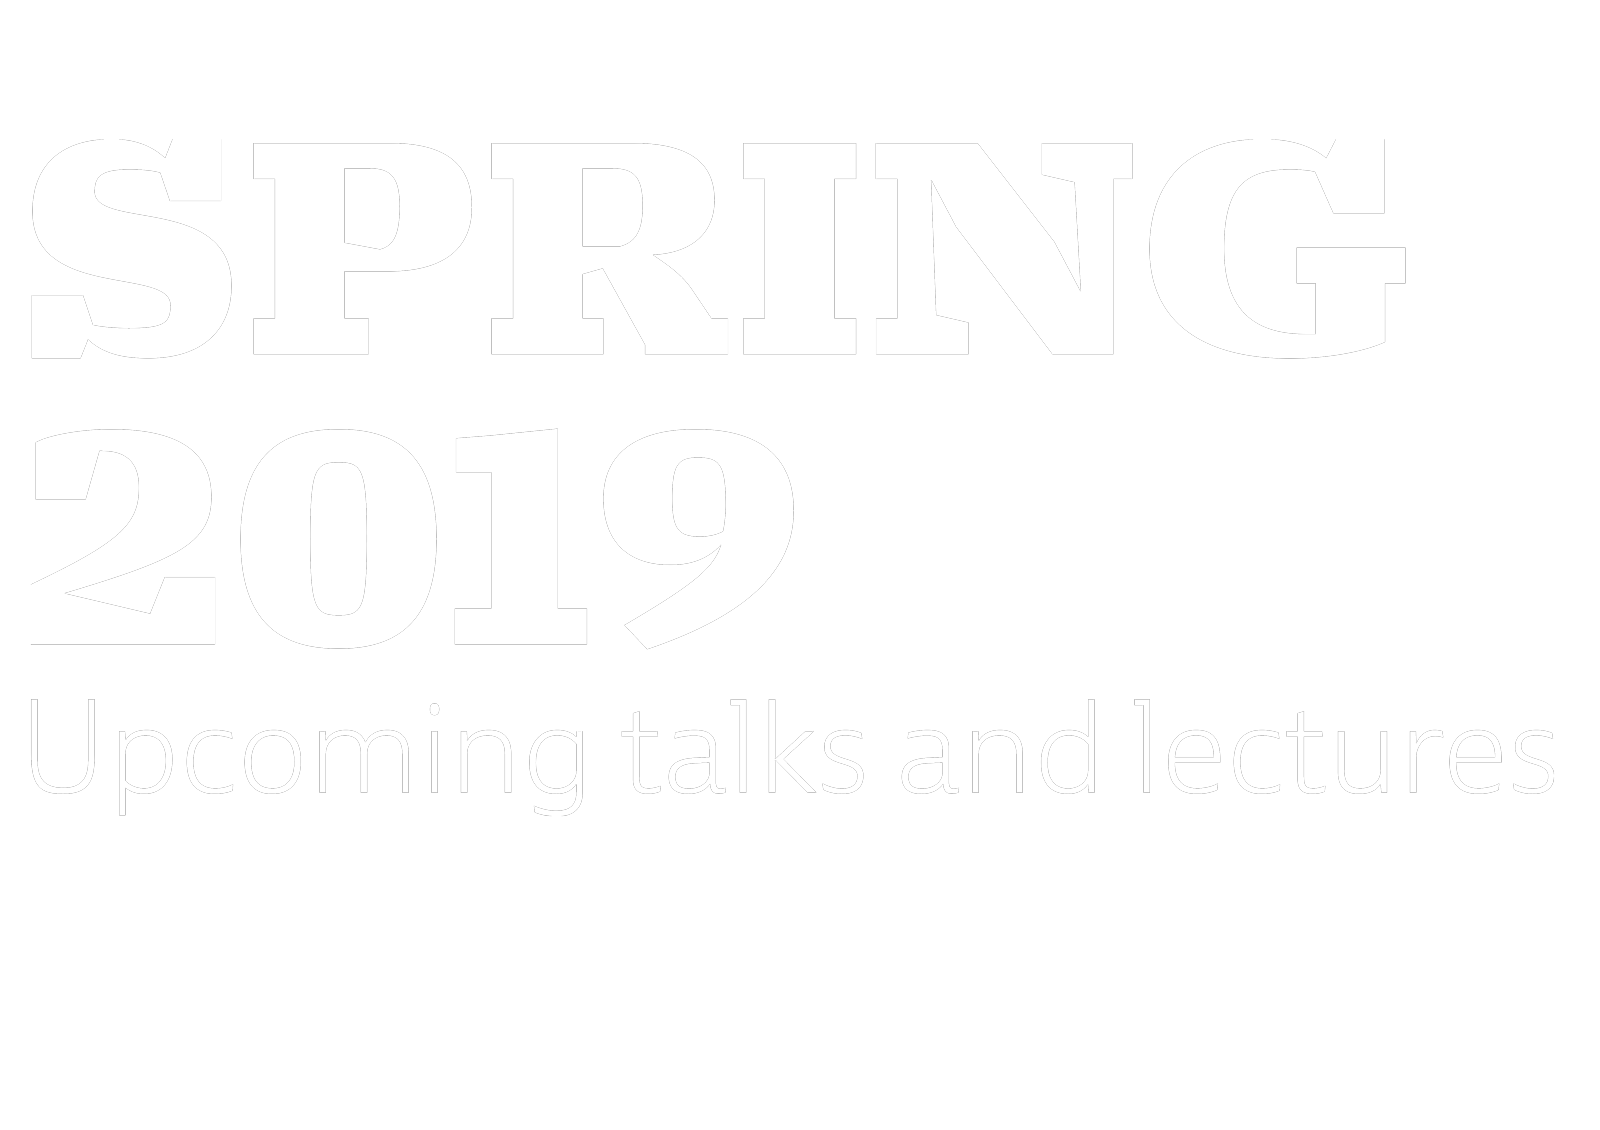 Upcoming lectures and workshops 2019